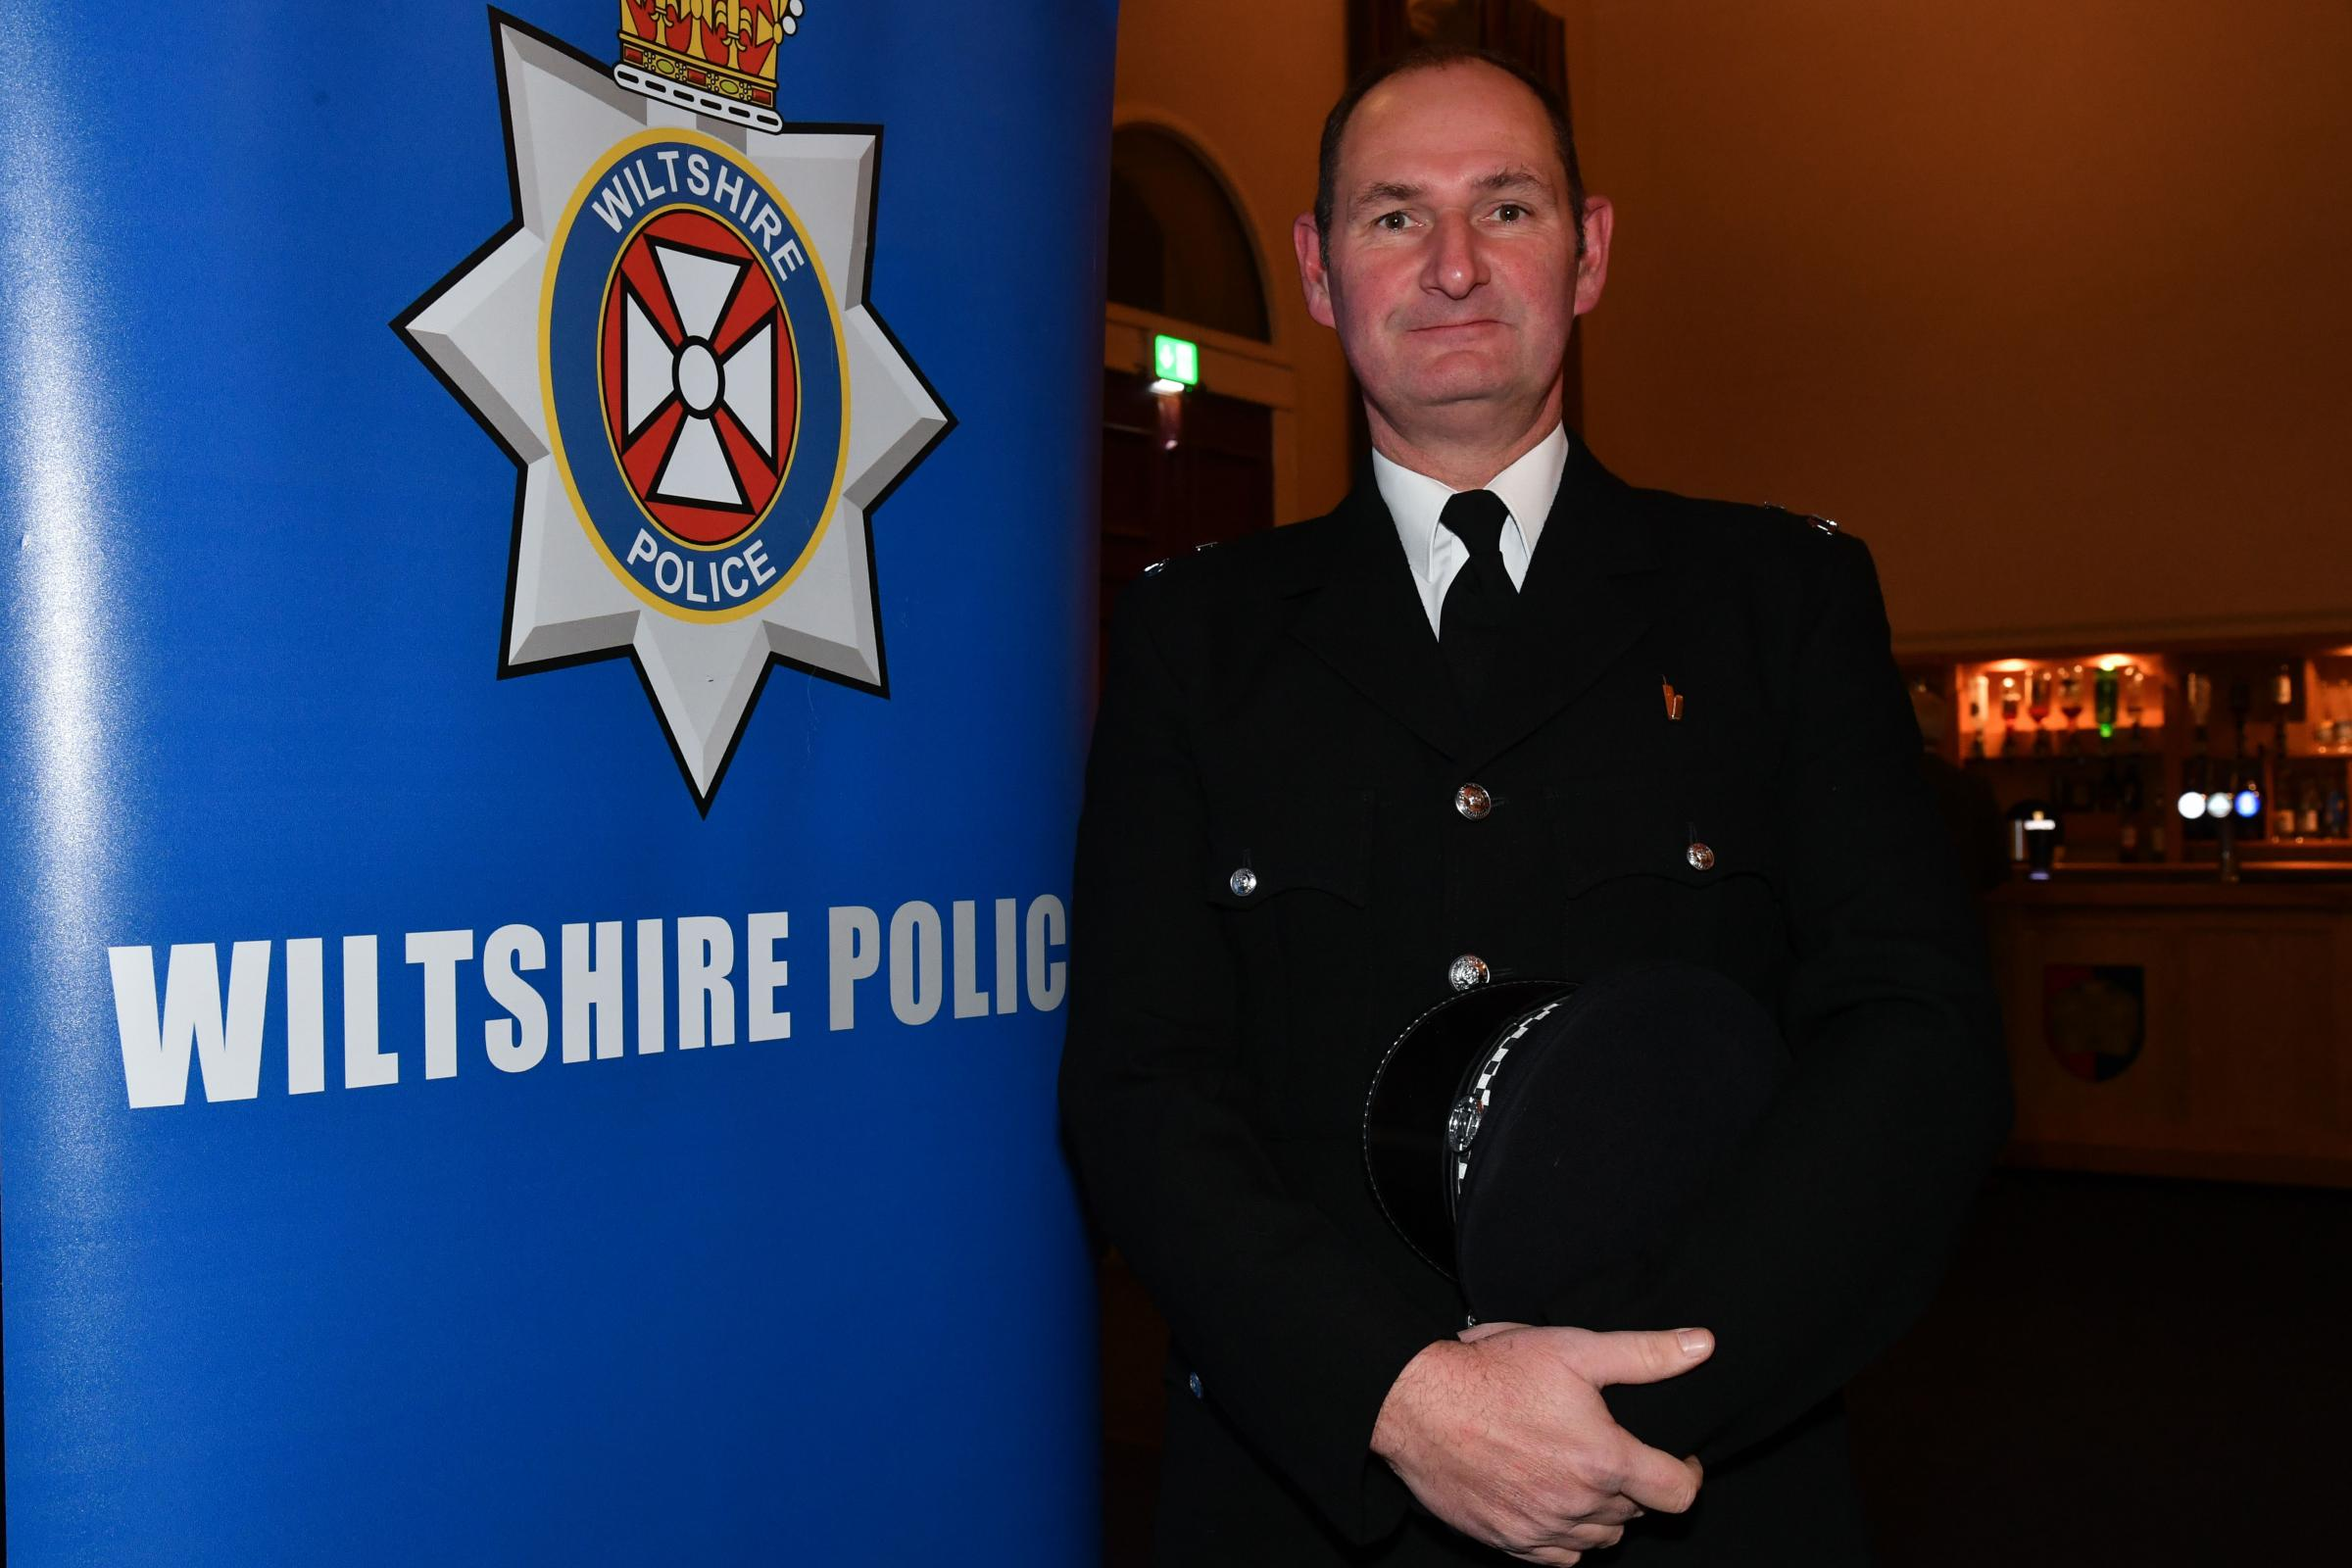 The Wiltshire Police Force Awards ceremony which took place at the Ceres Hall, Corn Exchange in Devizes on Tuesday evening.About to collect the award is PC James James Darvill. PS025.15 ends